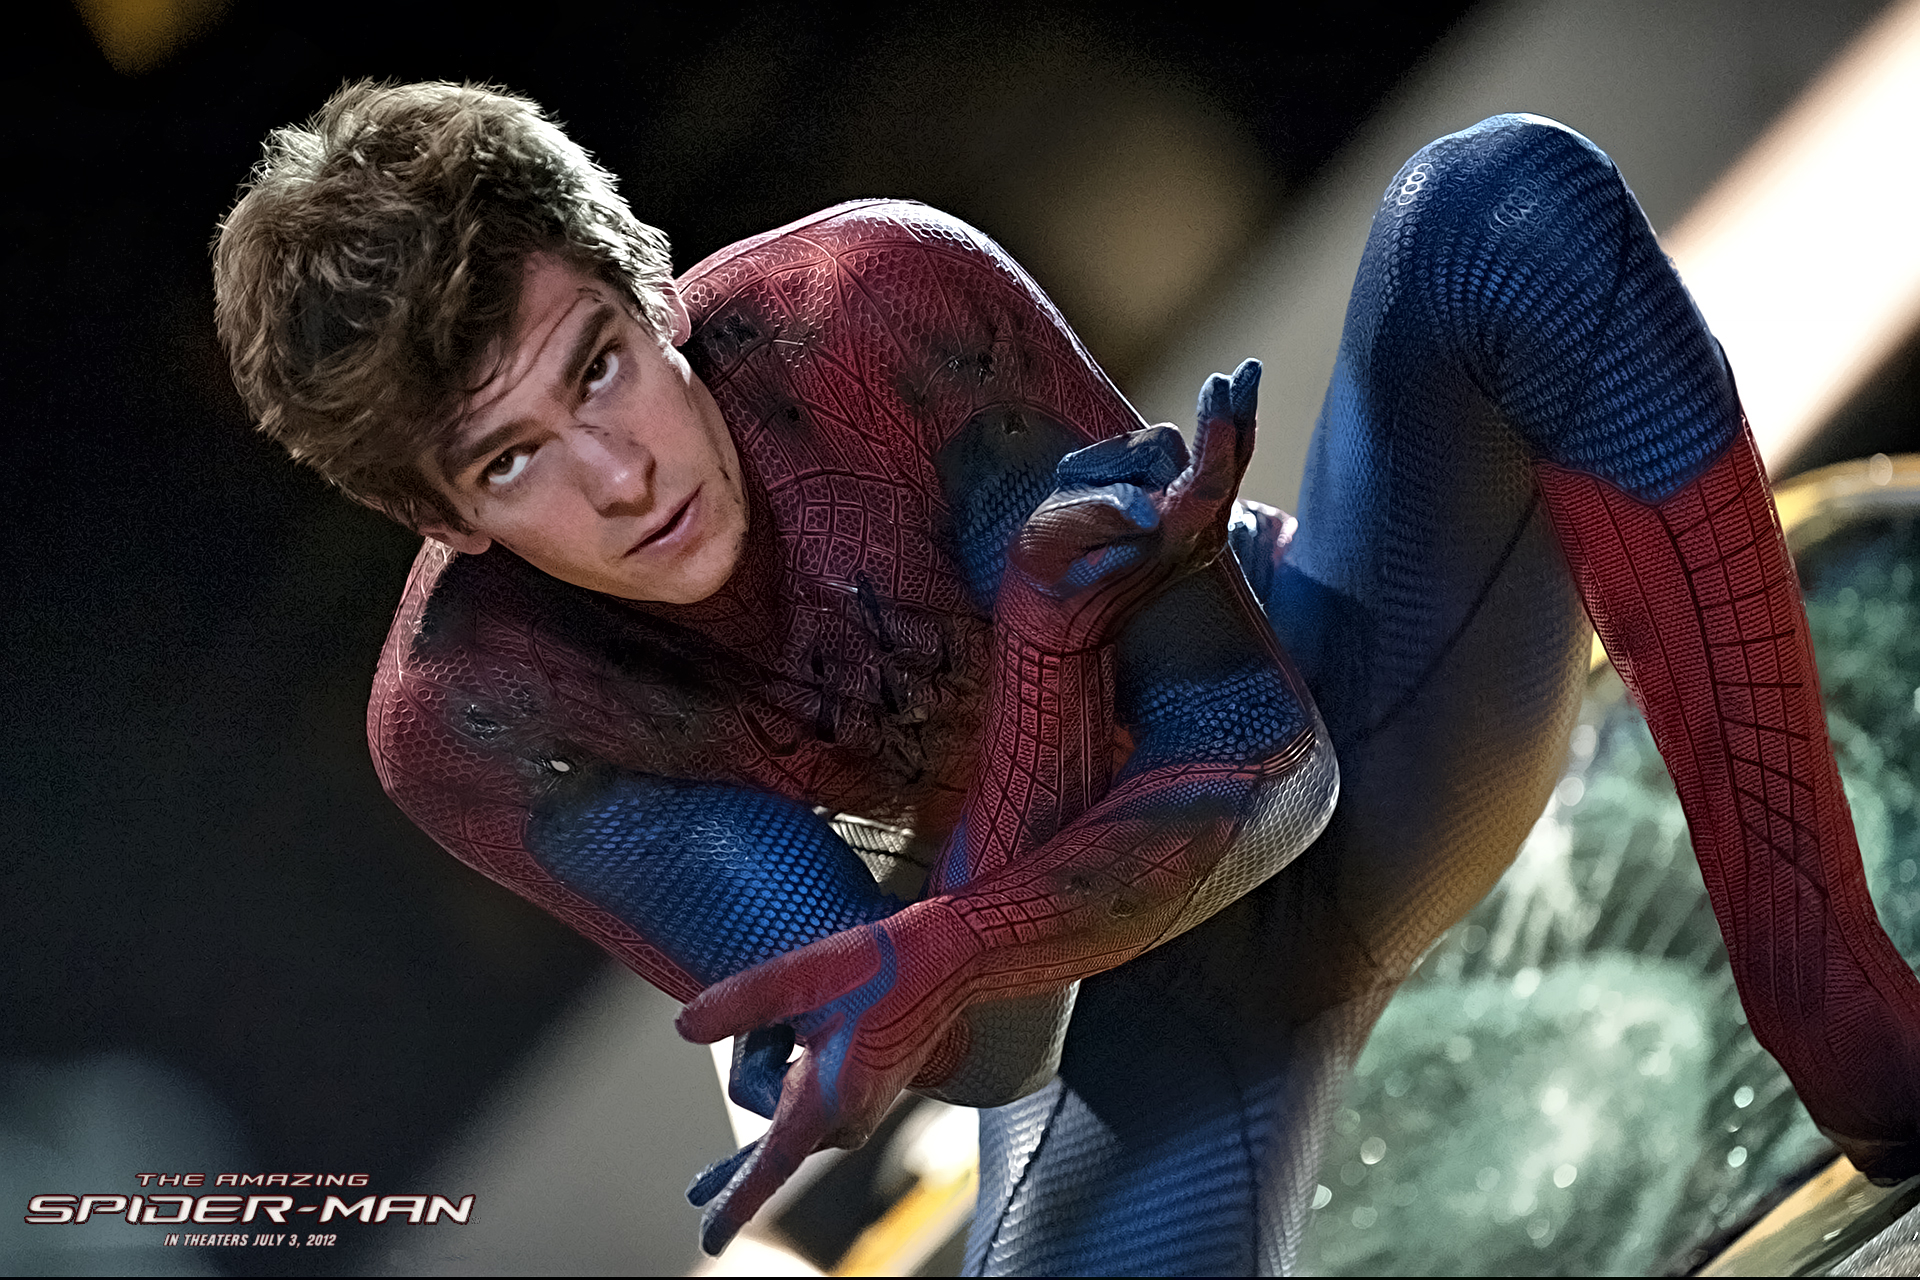 The Amazing Spider Man wallpapers 19201280 1920x1280